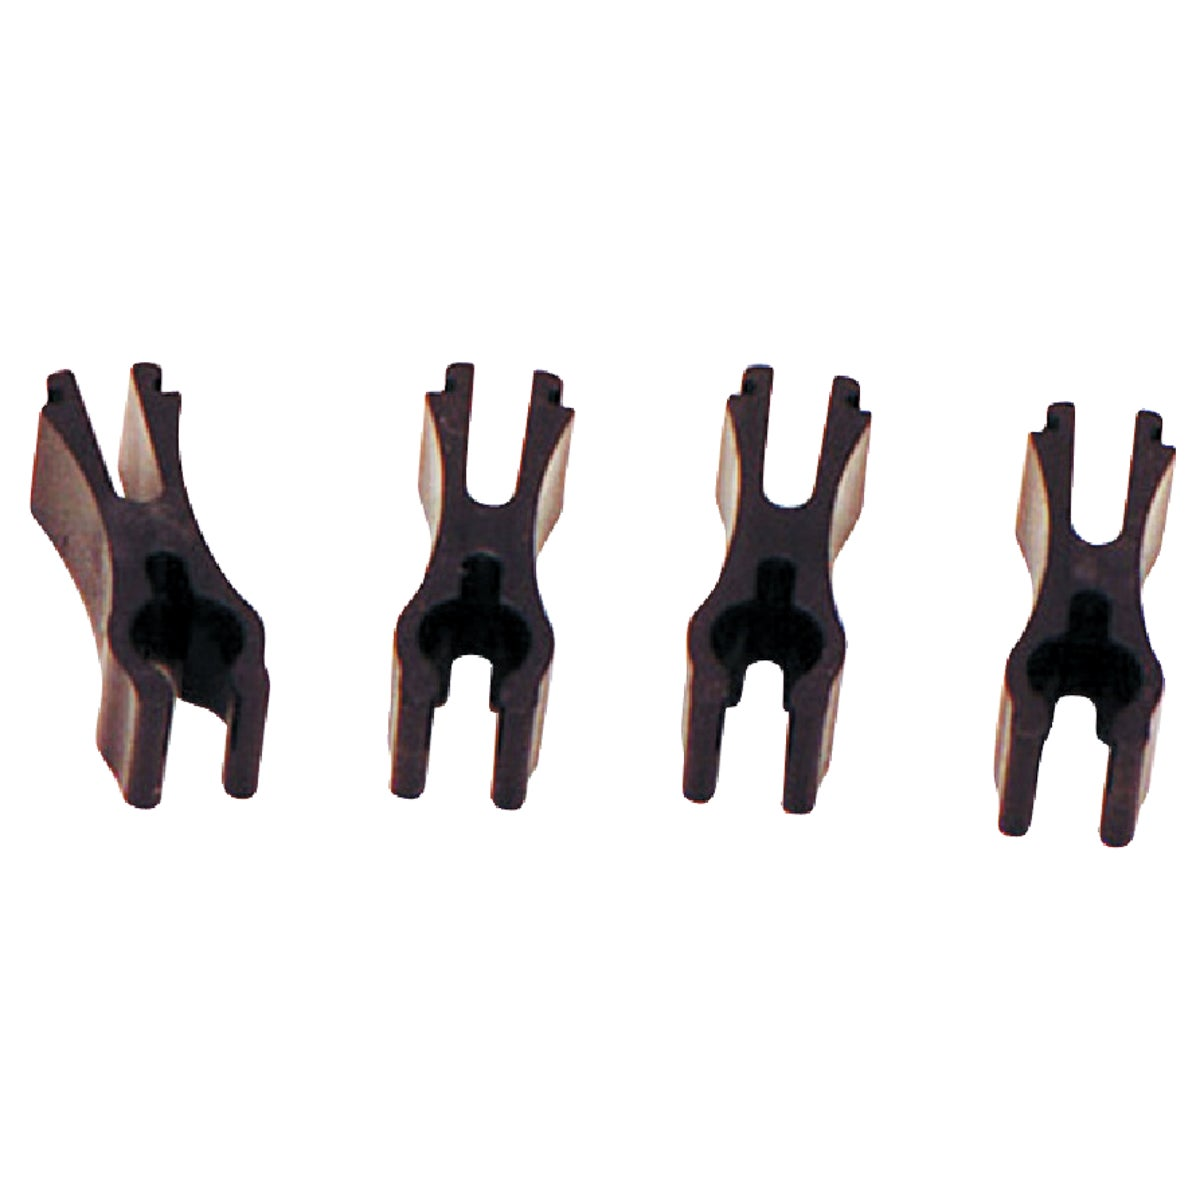 4PK TUBE CLIP - 4632 by Dial Manufacturing